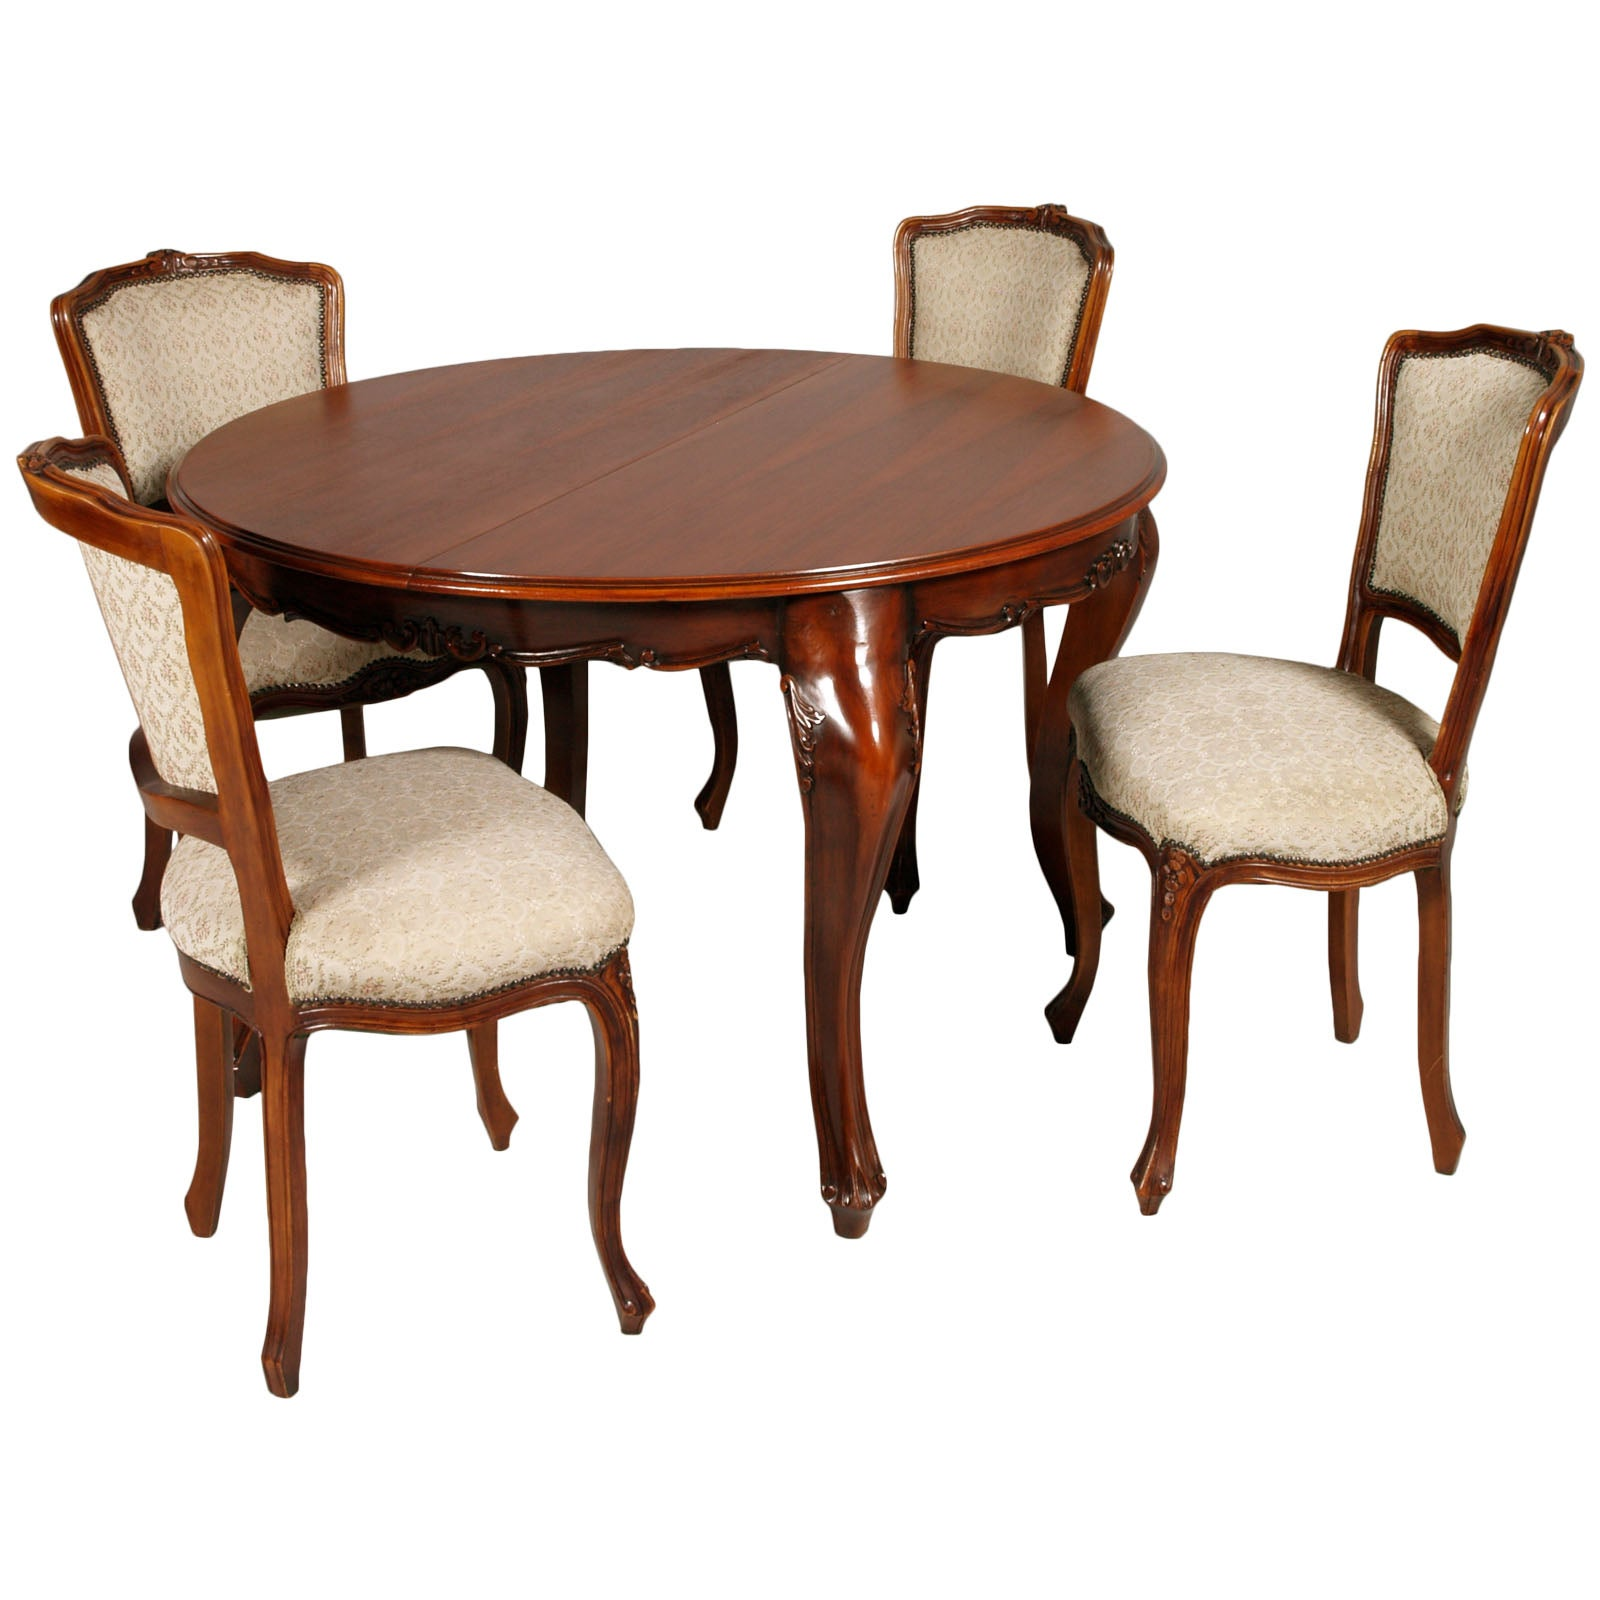 Revival Baroque Extendable Round Table With Four Chairs In Solid